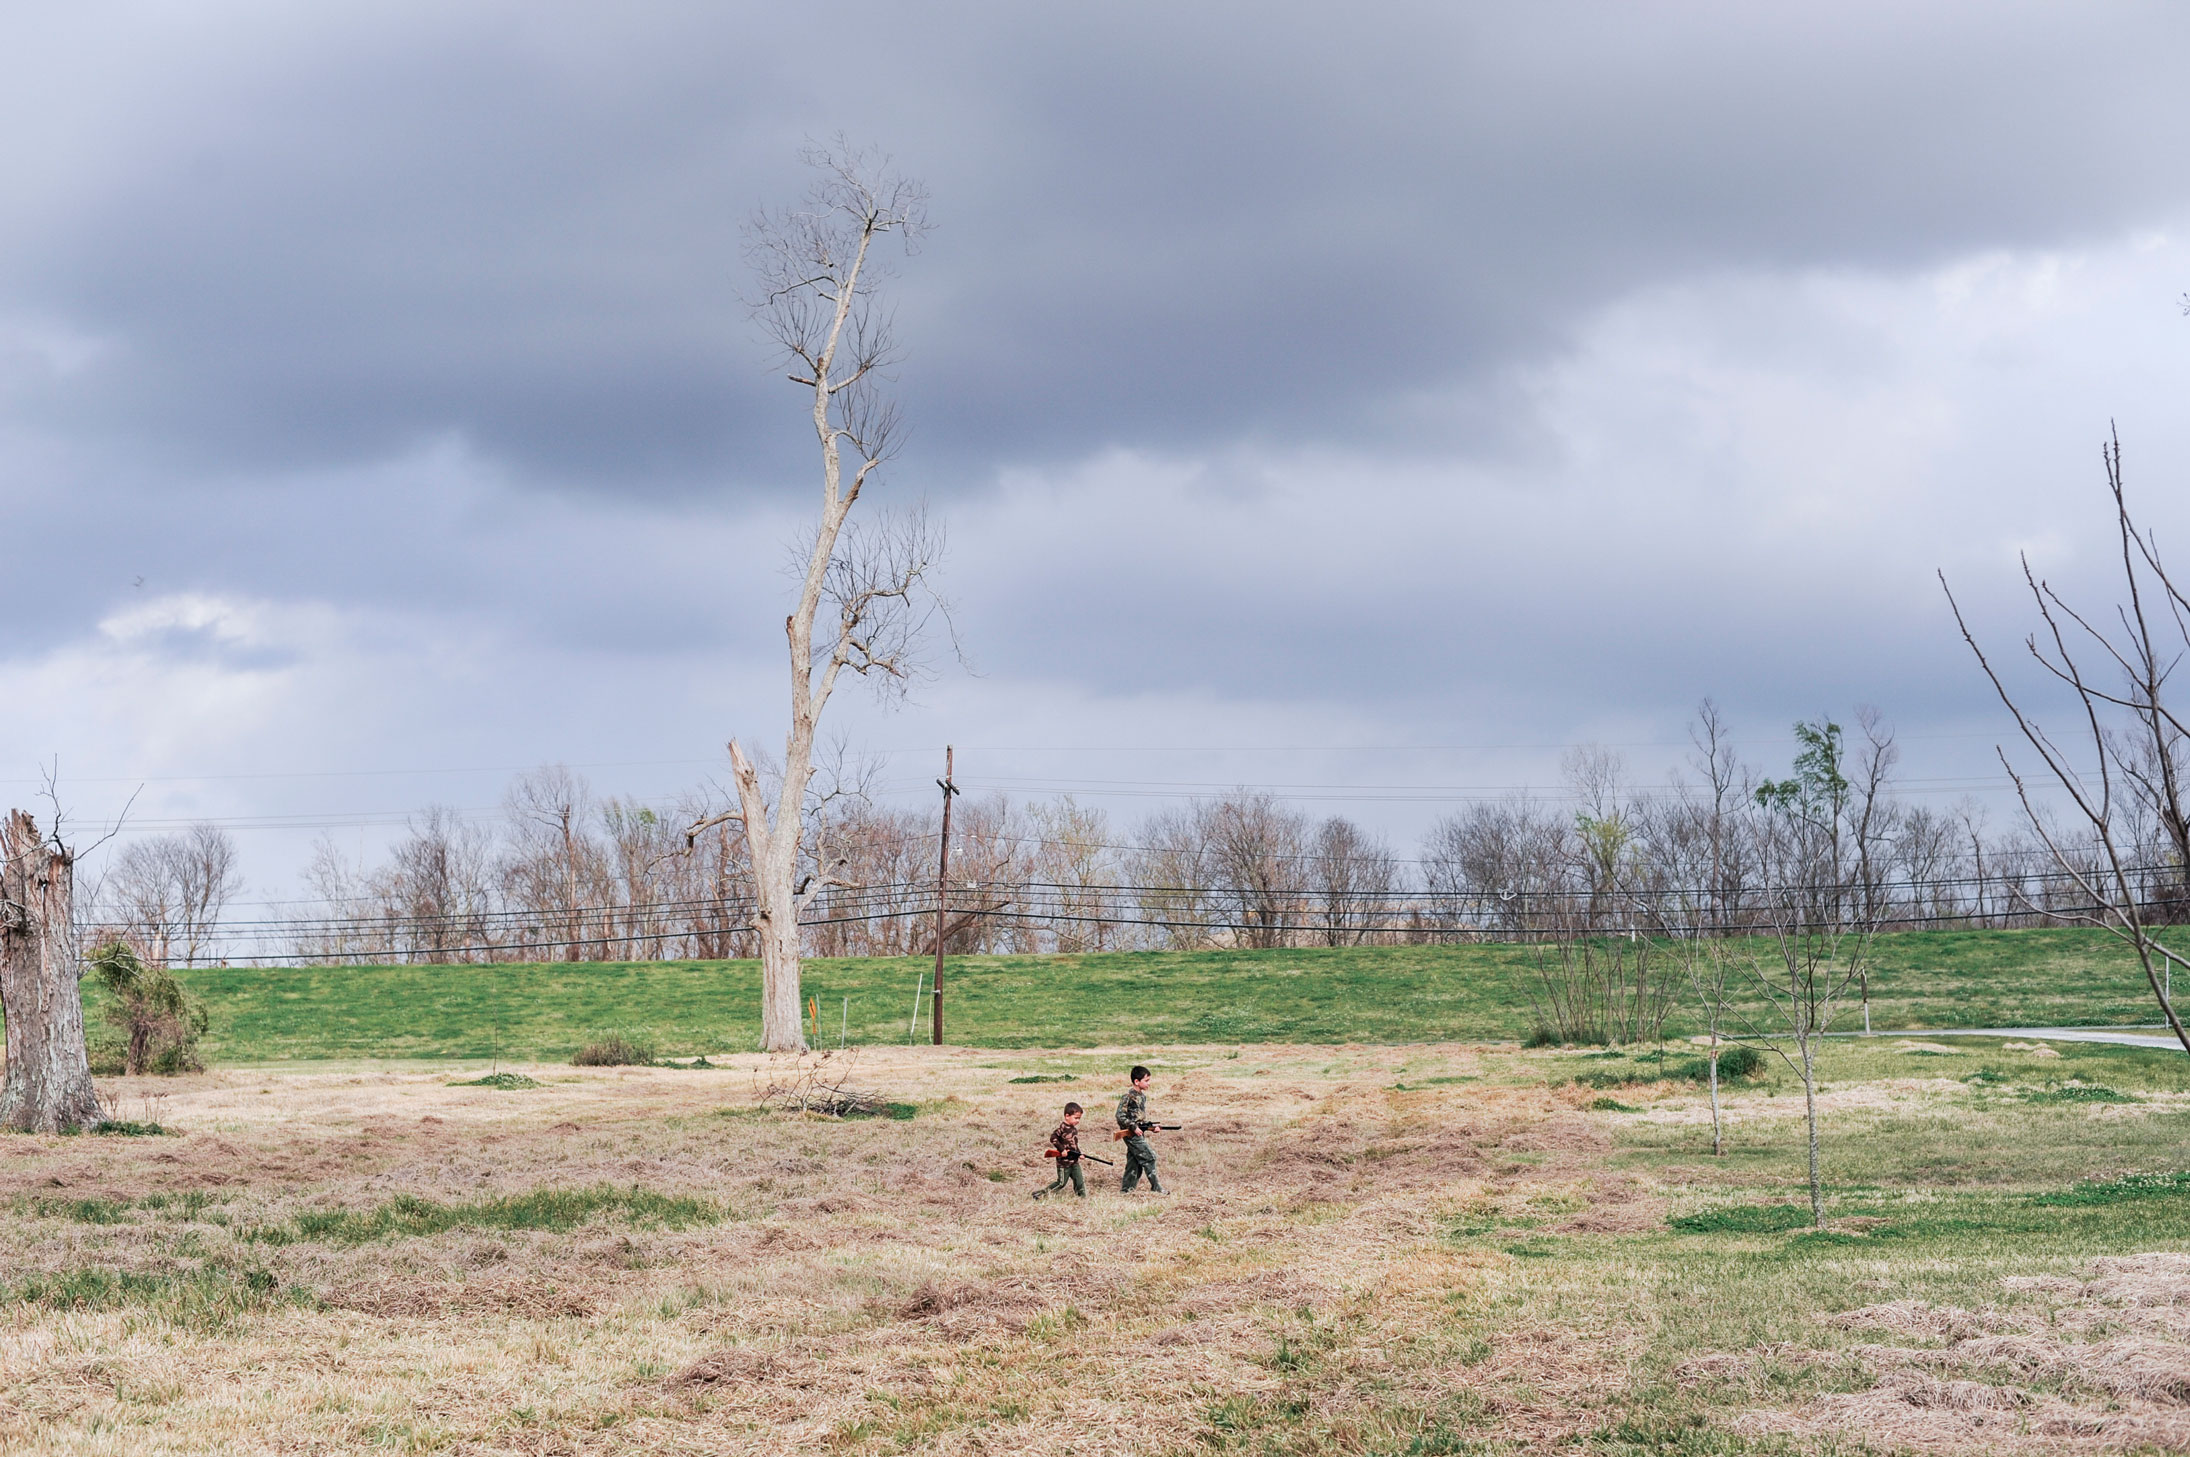 On the outskirts of New Orleans, Louisiana. 2009. Hunting rabbits with BB guns.